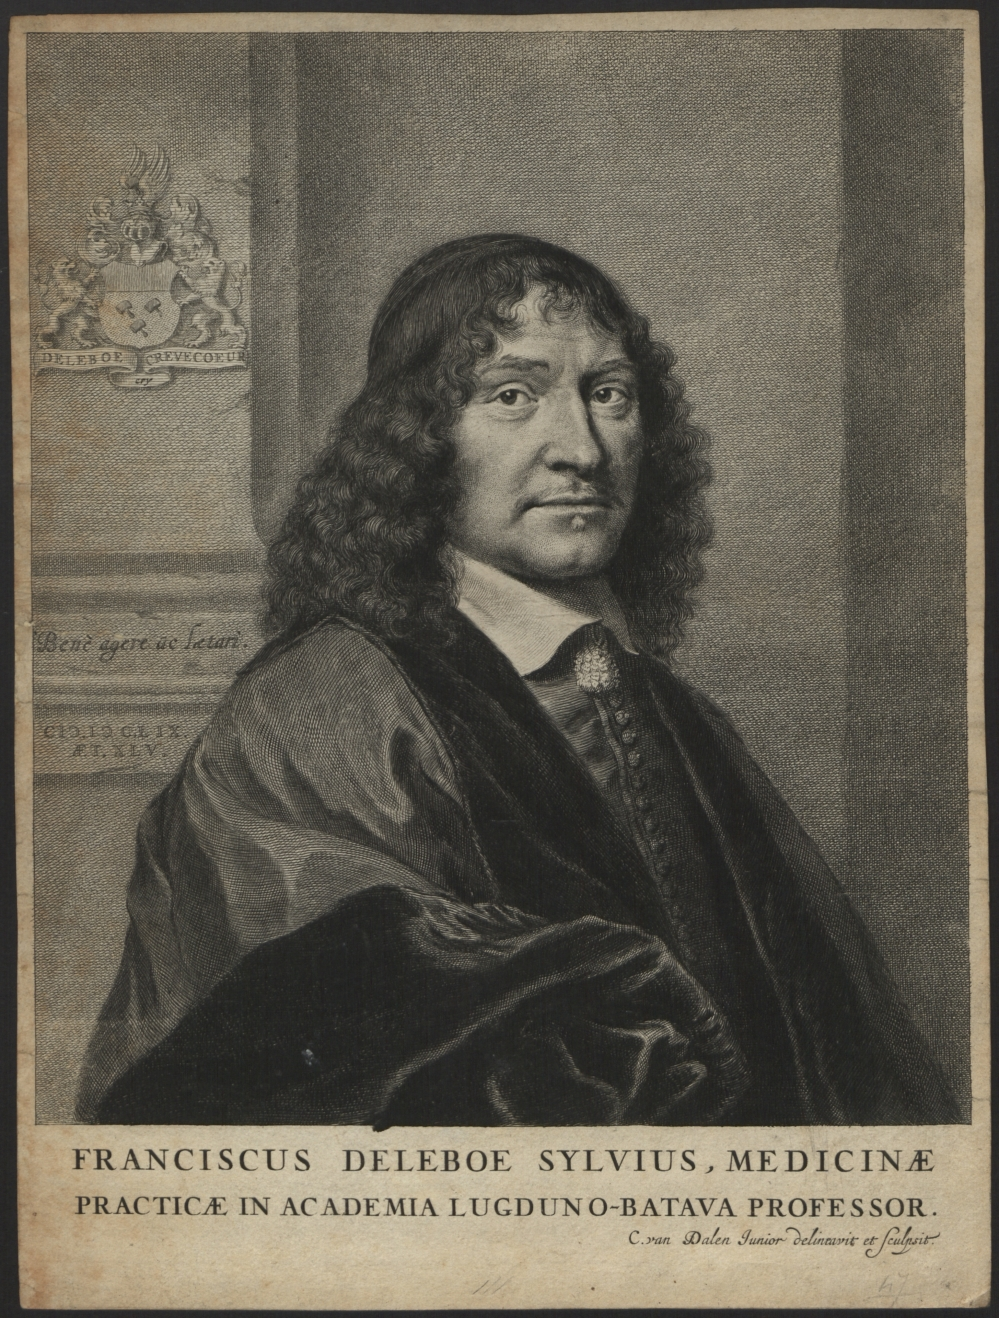 preview image for Print (Engraving) Franciscus Deleboe Sylvius, engraved by C. van Dalen, c. 1659